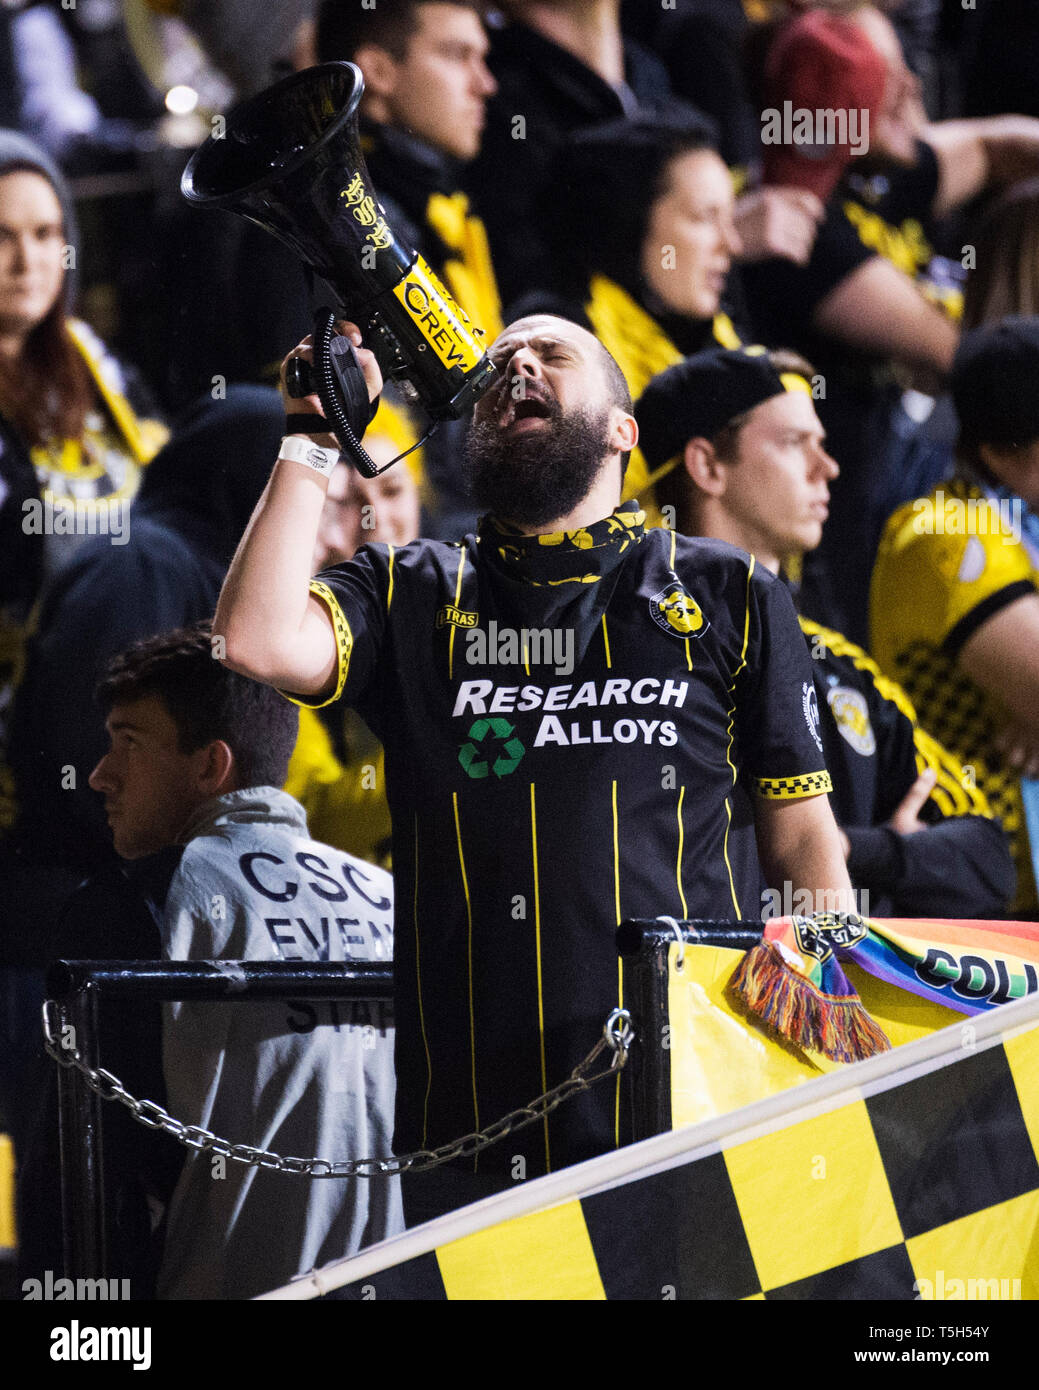 April 24, 2019: A Columbus Crew fan cheers his team on against DC United in their game in Columbus, Ohio, USA. Brent Clark/Alamy Live News - Stock Image